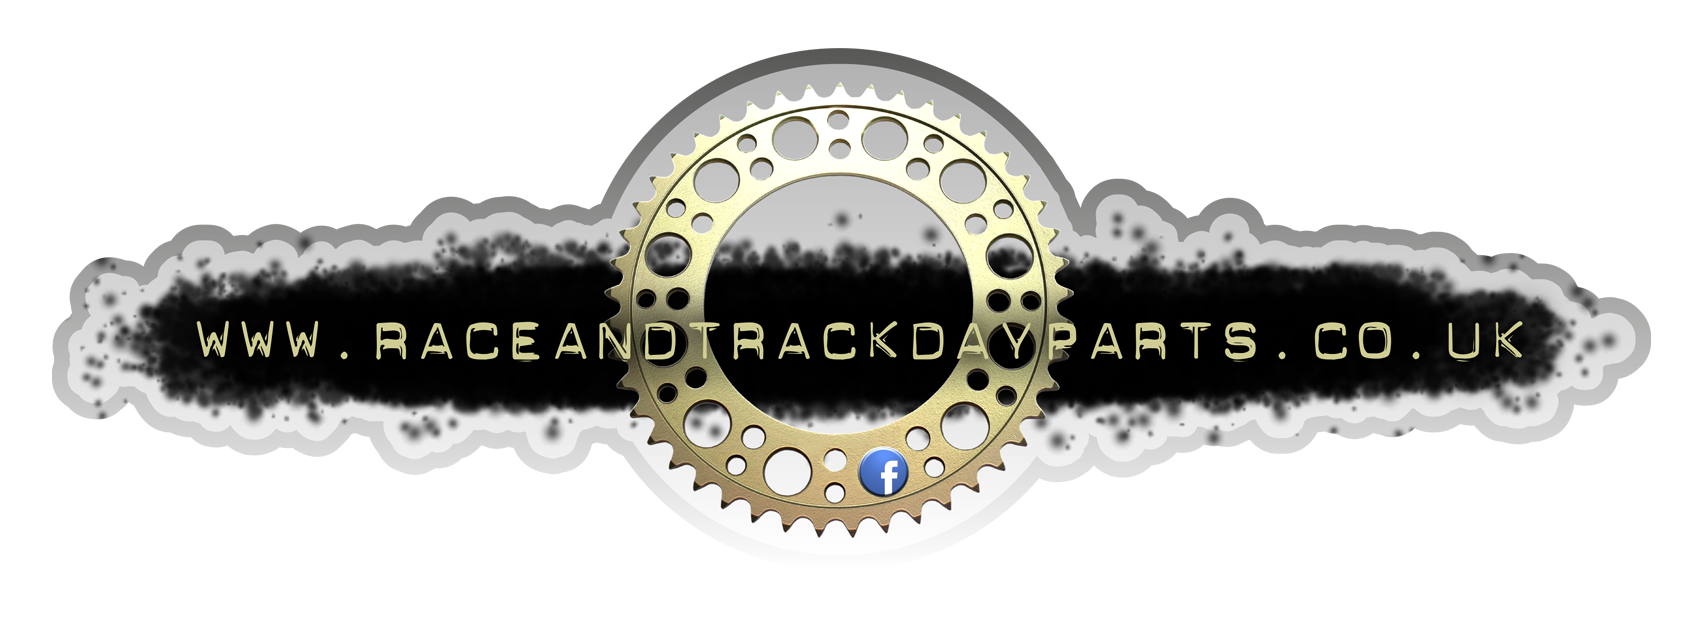 race and trackday parts sprocket logo for new website